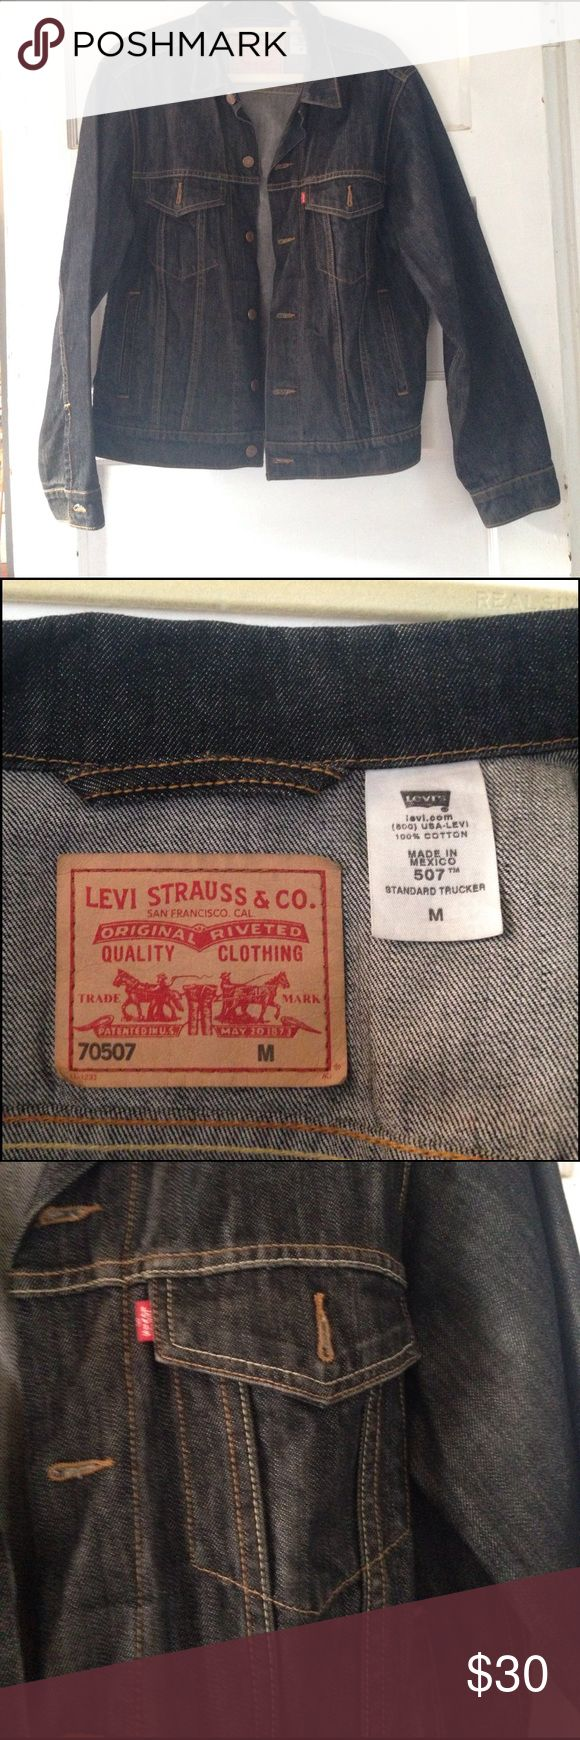 Levi Standard Trucker Denim Jacket Levi 507 jean jacket. Dark gray, almost black. Size Medium. Great condition. Still pretty crisp. Levi's Jackets & Coats Lightweight & Shirt Jackets